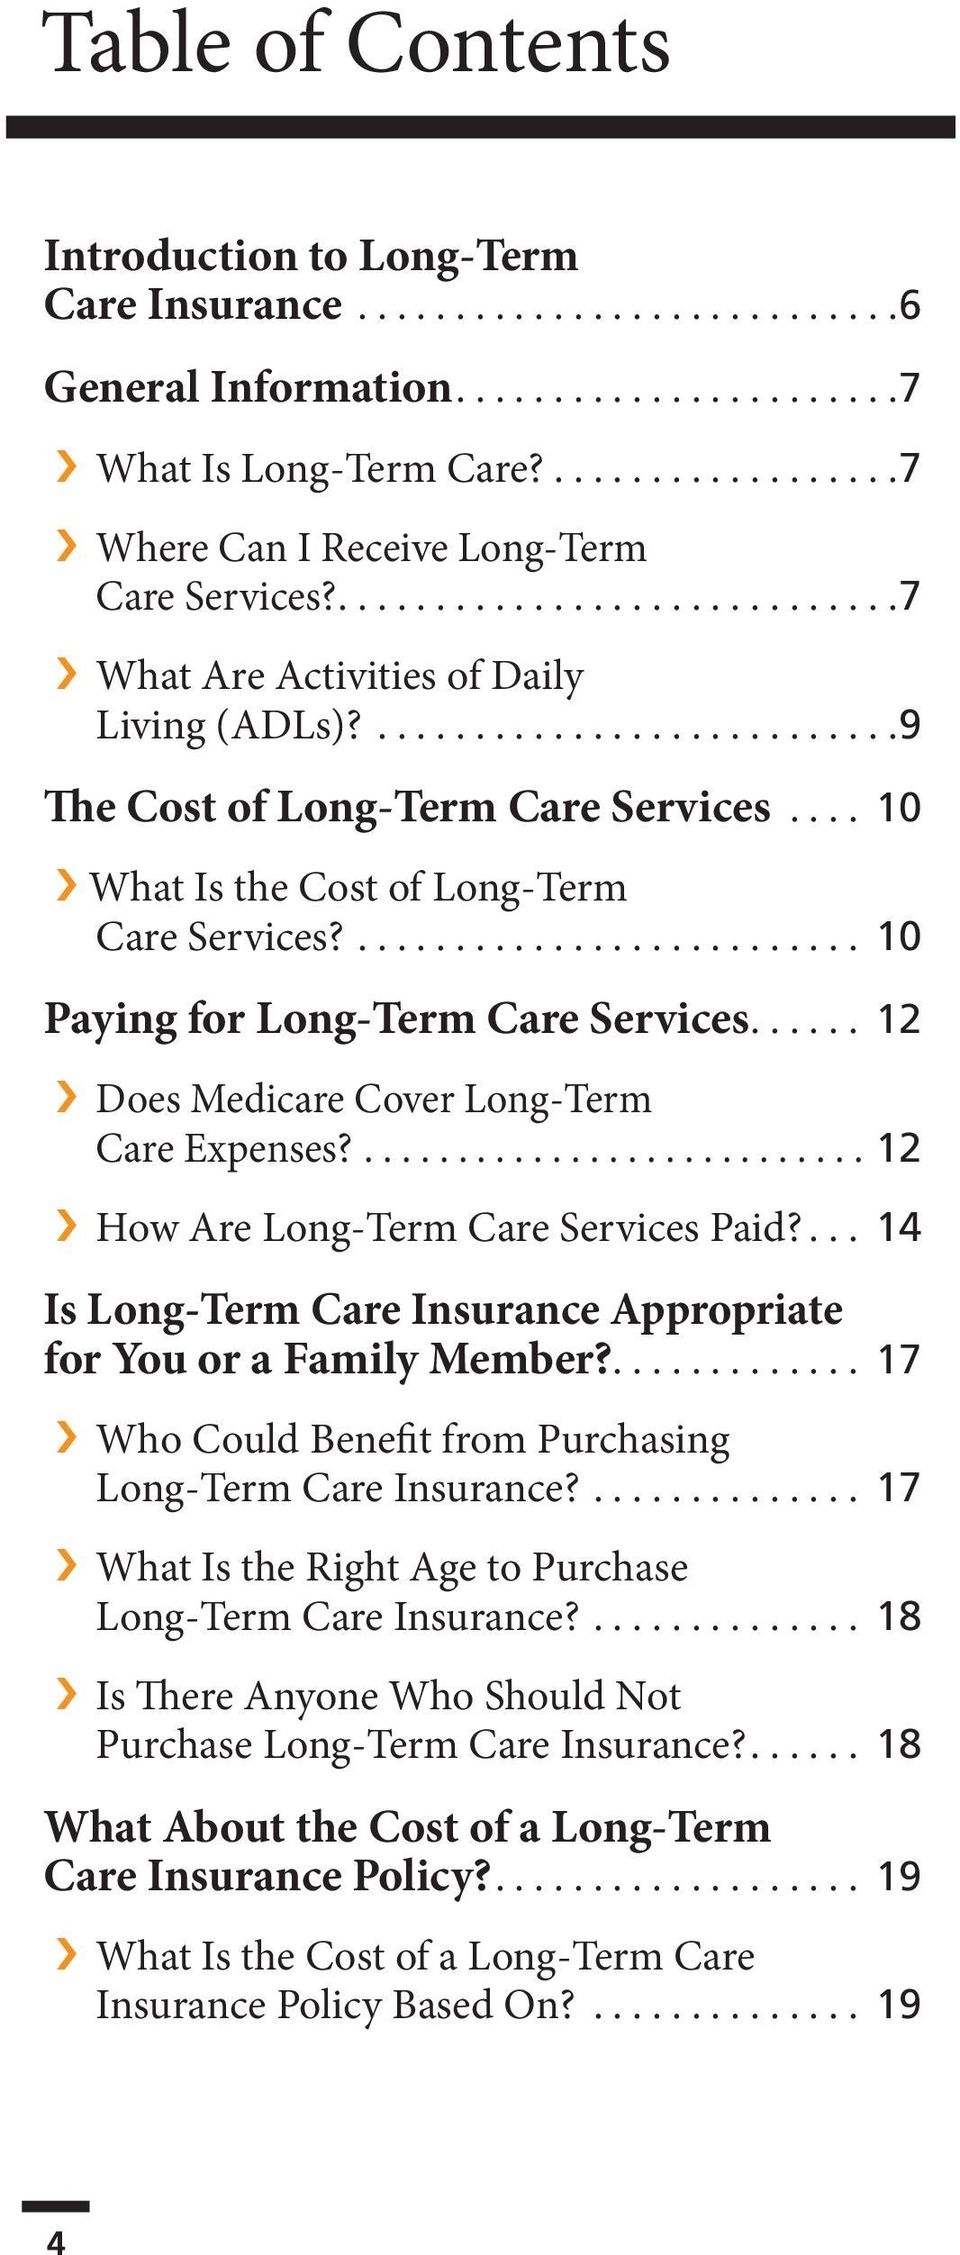 ... 10 What Is the Cost of Long-Term Care Services?.......................... 10 Paying for Long-Term Care Services...... 12 Does Medicare Cover Long-Term Care Expenses?